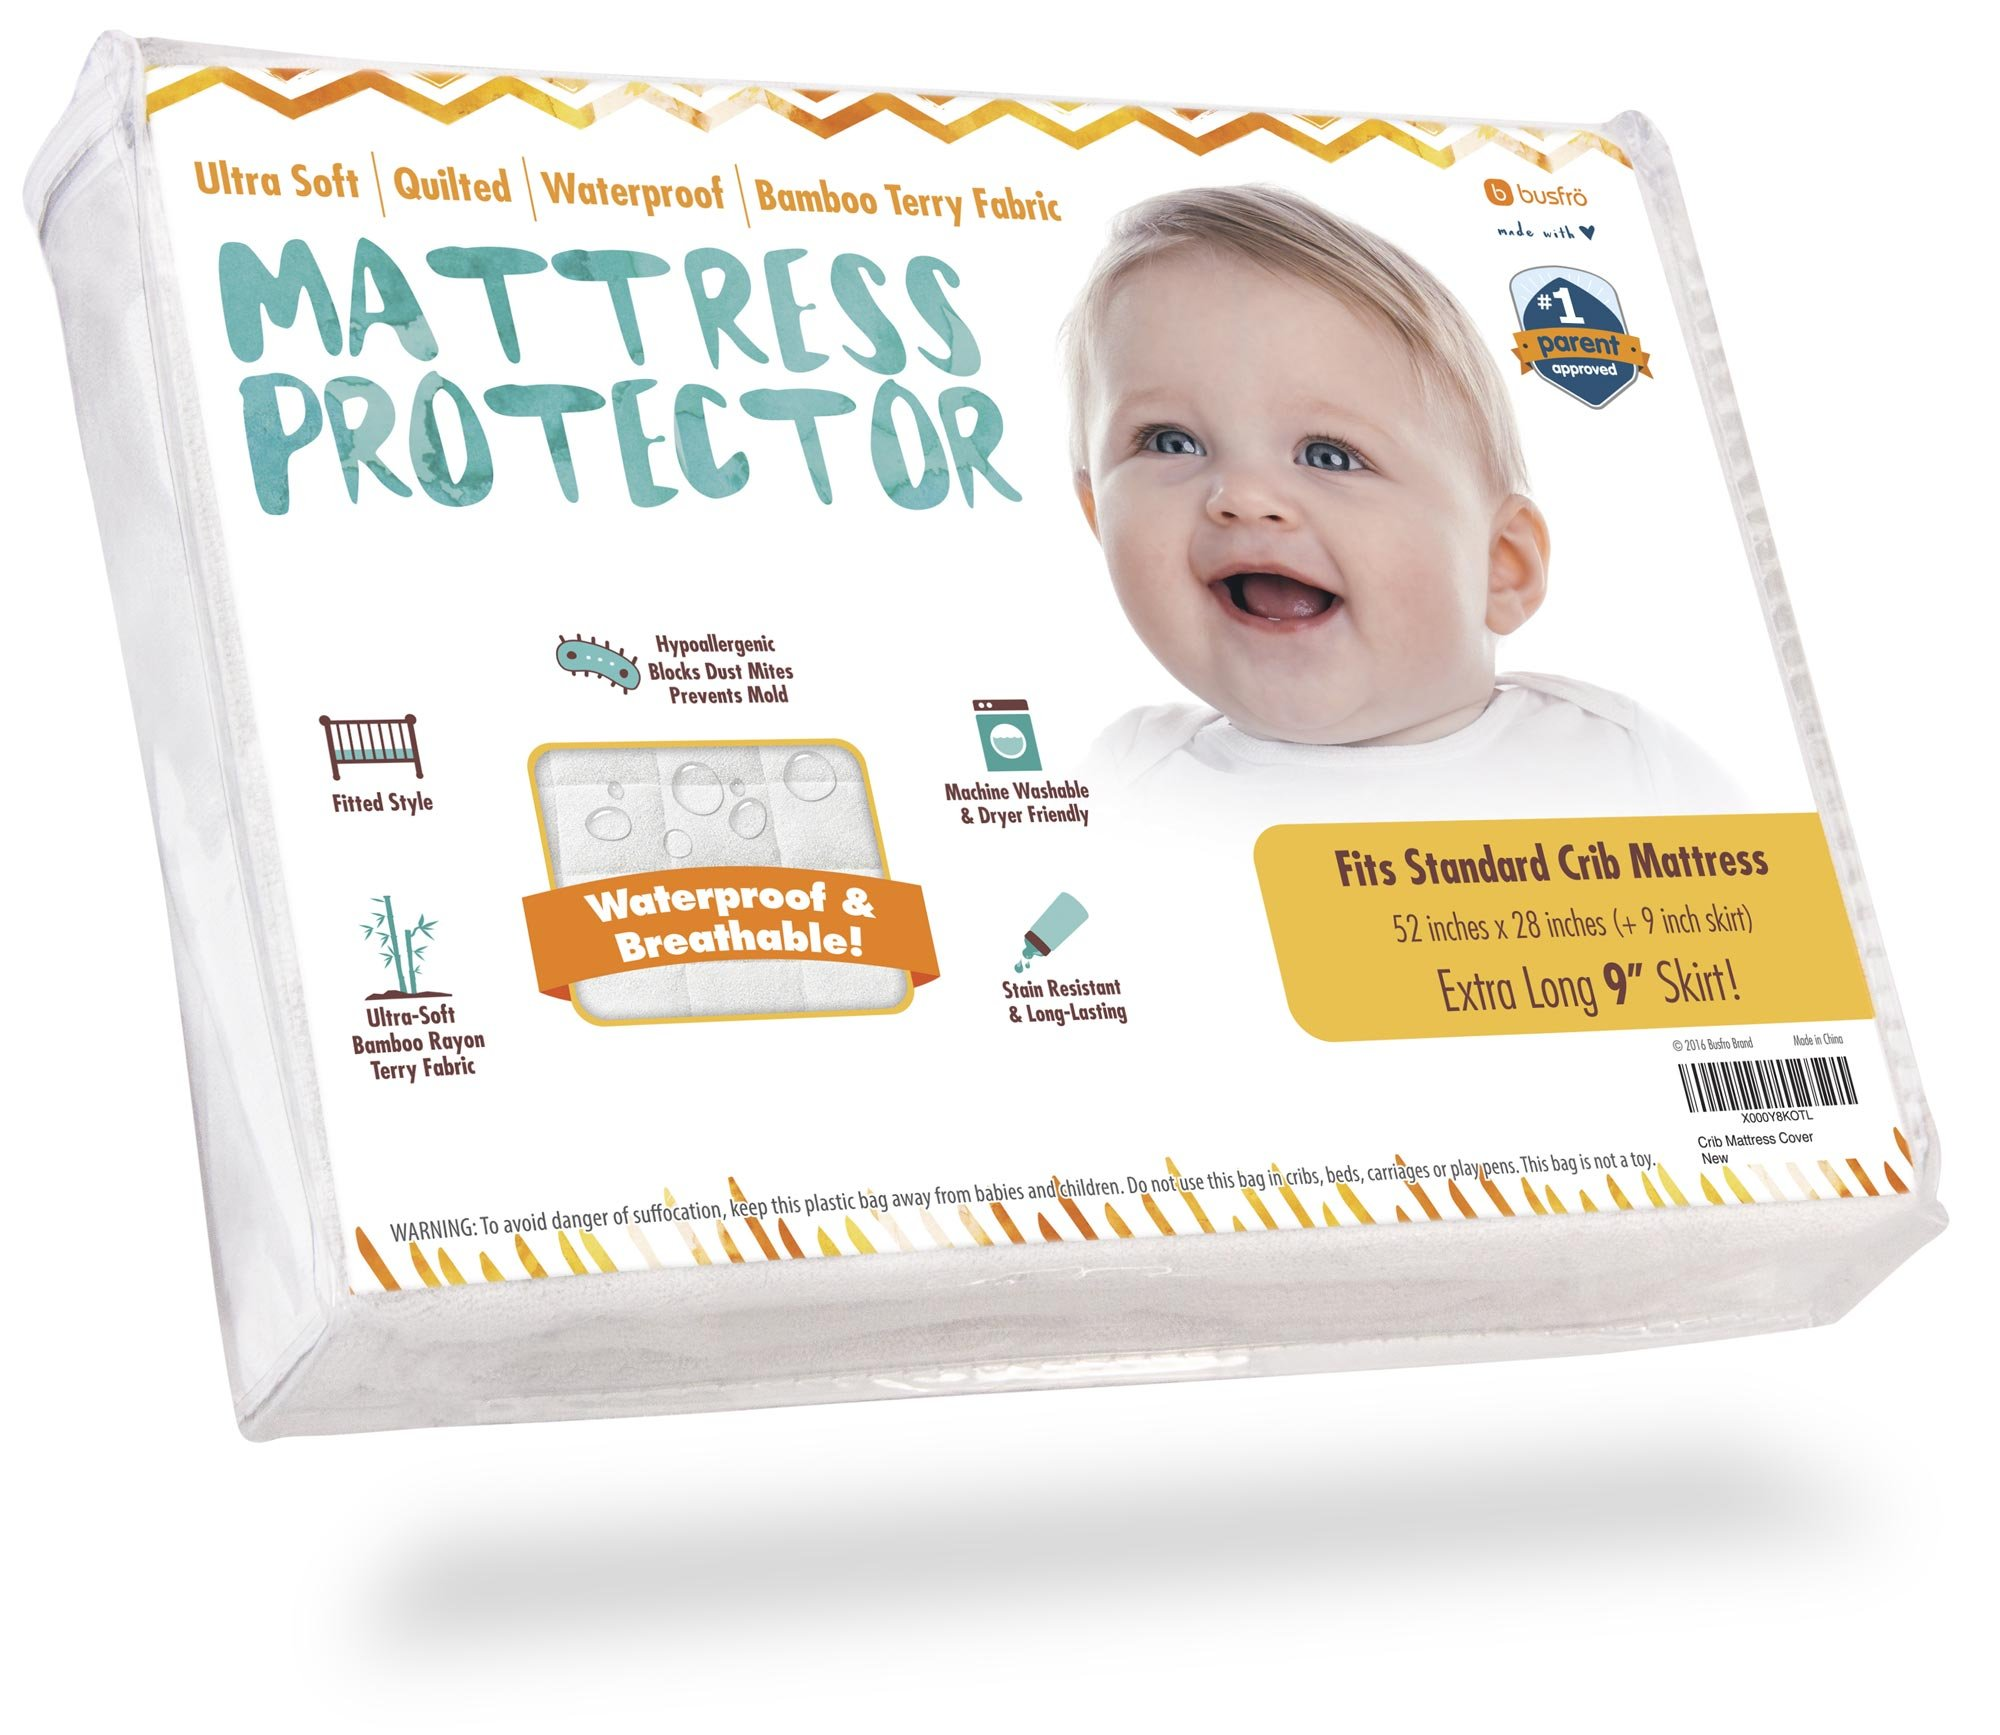 """Crib Mattress Protector - Waterproof Pad Cover, Ultra-Soft Bamboo, Fitted Sheet with Large 9"""" Skirt - Quilted, Washer/Dryer Friendly with Stain Protection for Baby Bed"""